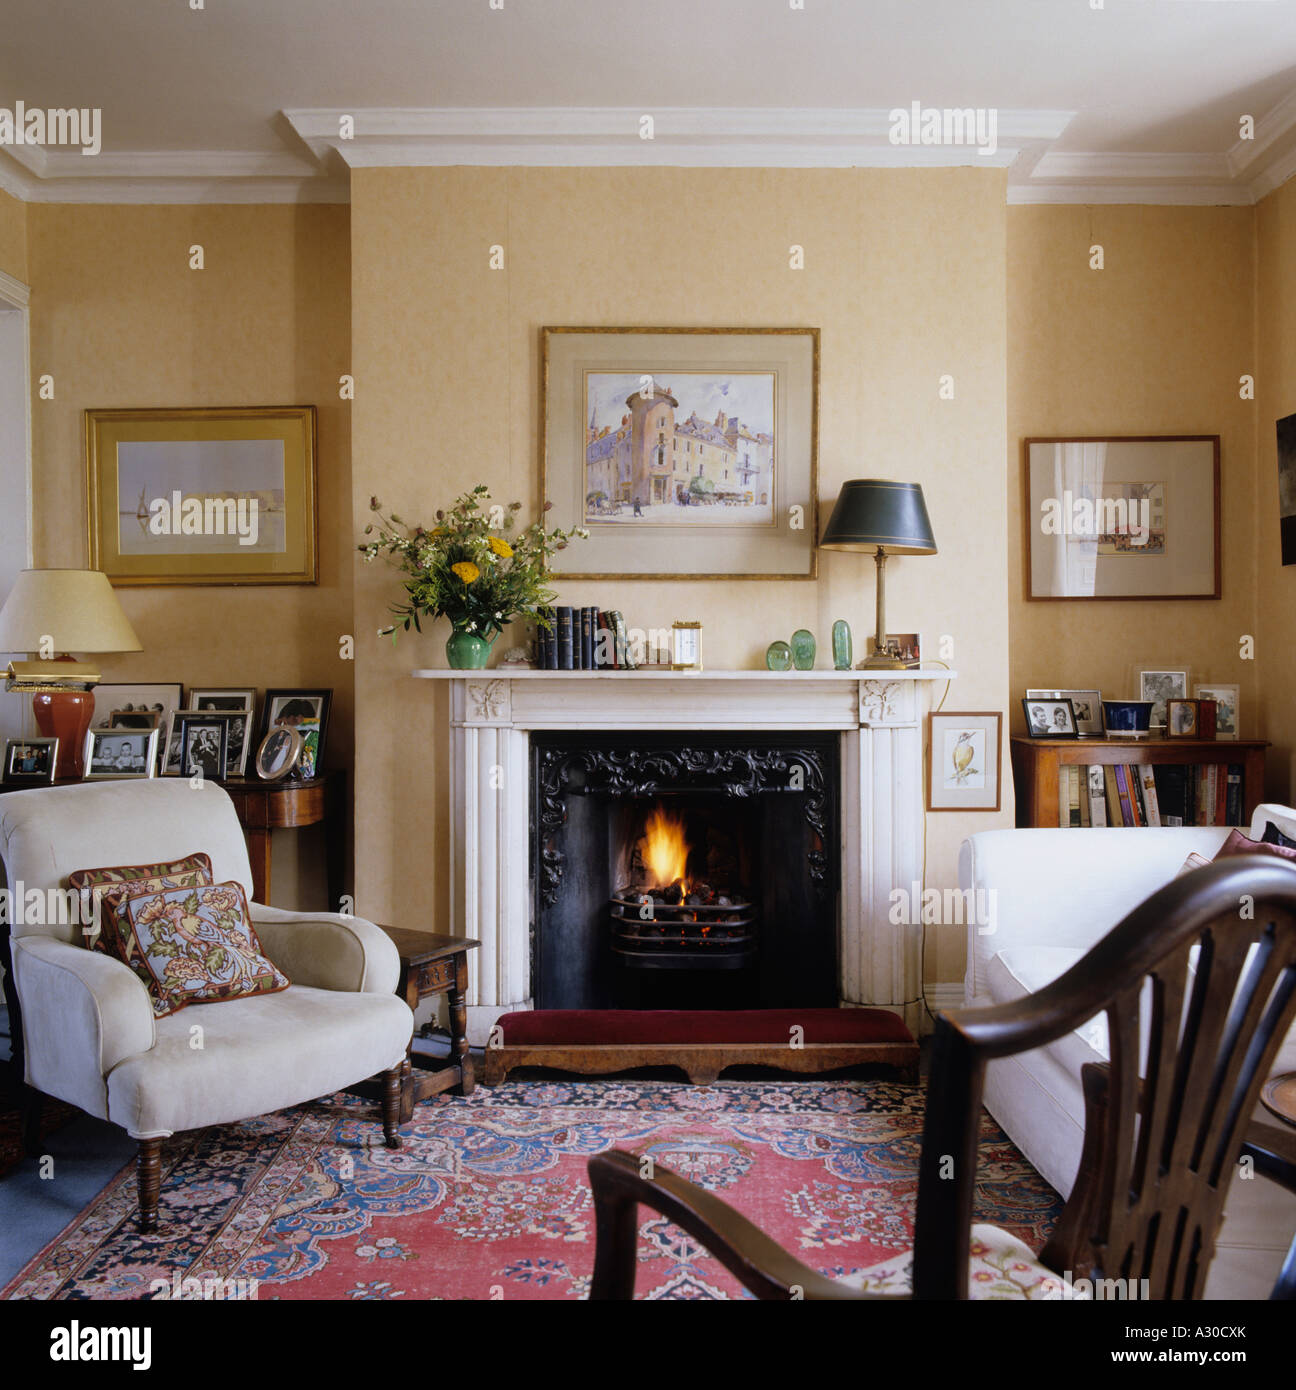 English country style living room with mantel piece, arm chair and ...